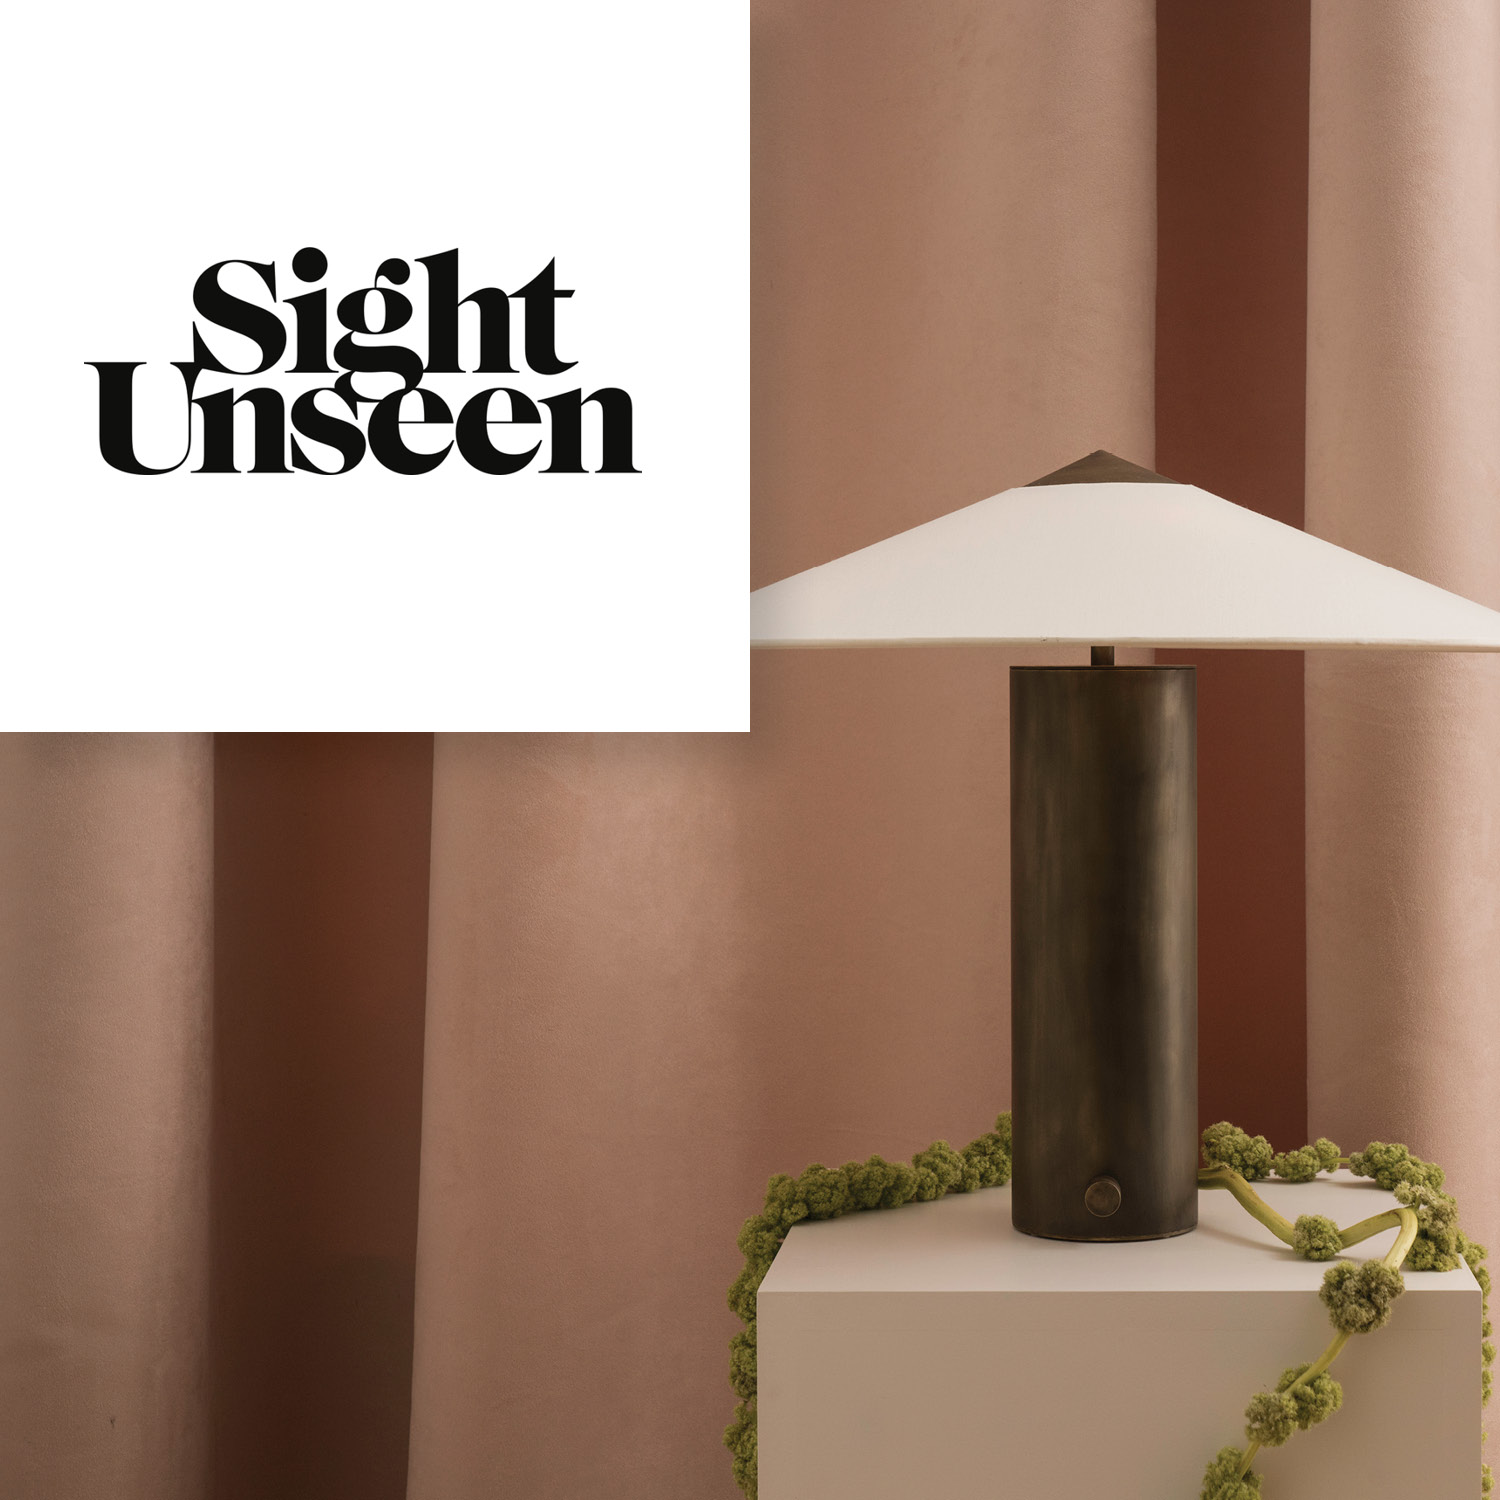 Sight Unseen, May 2019